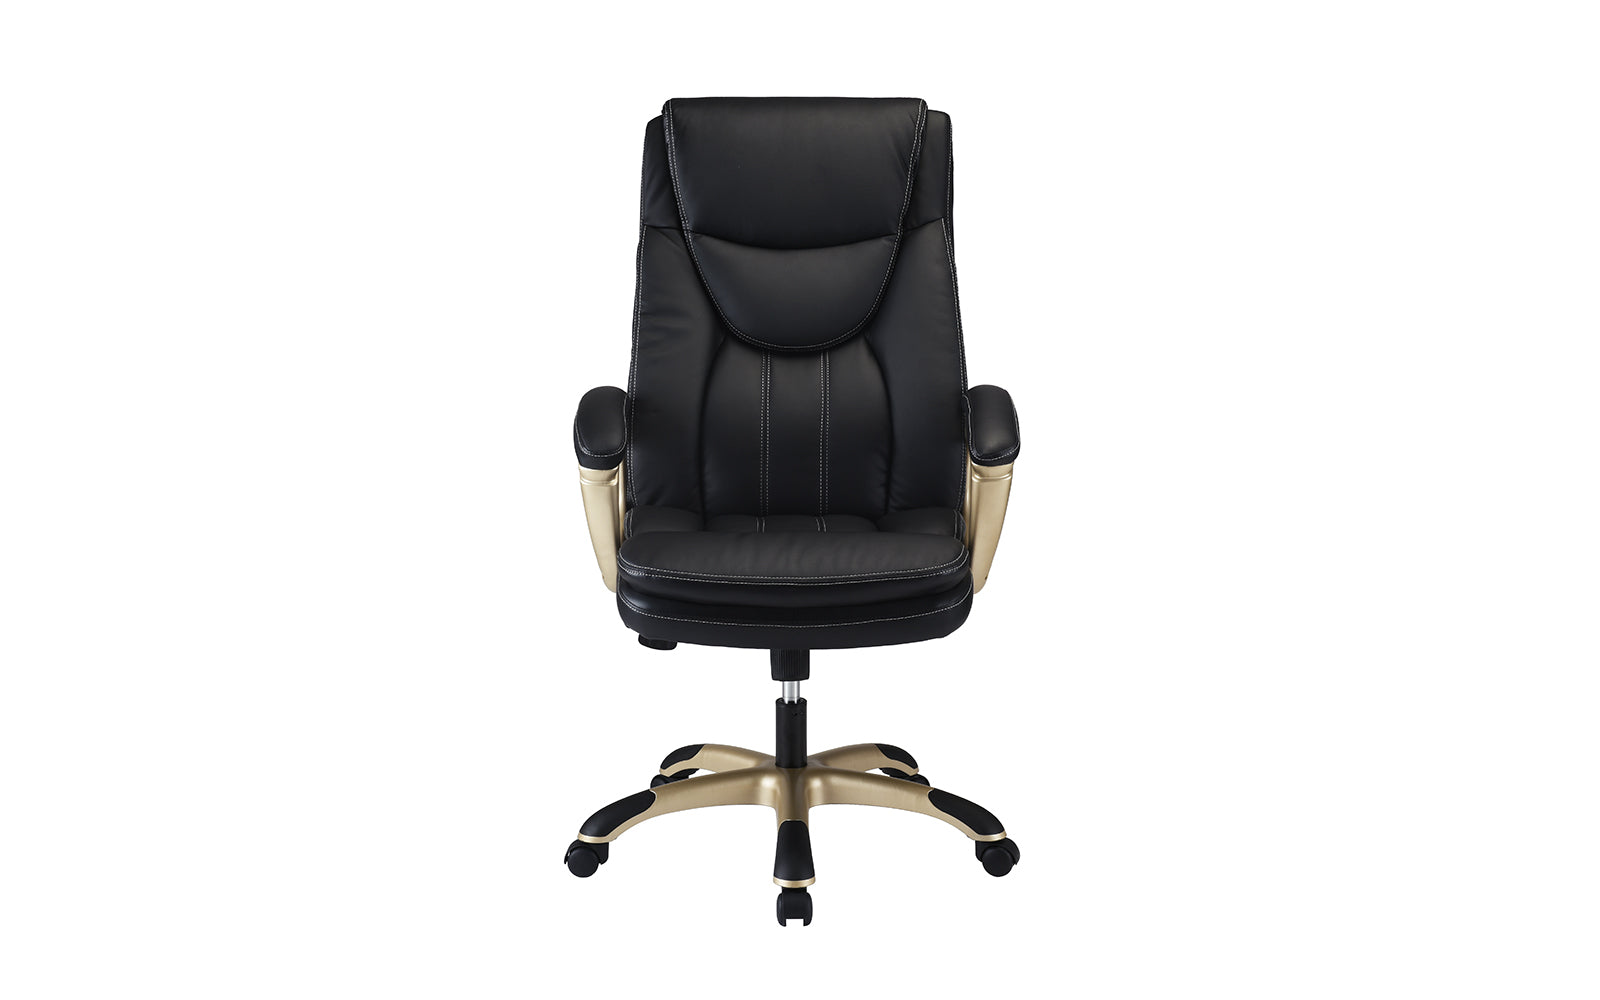 City Plush High Back Faux Leather Executive Office Swivel Chair